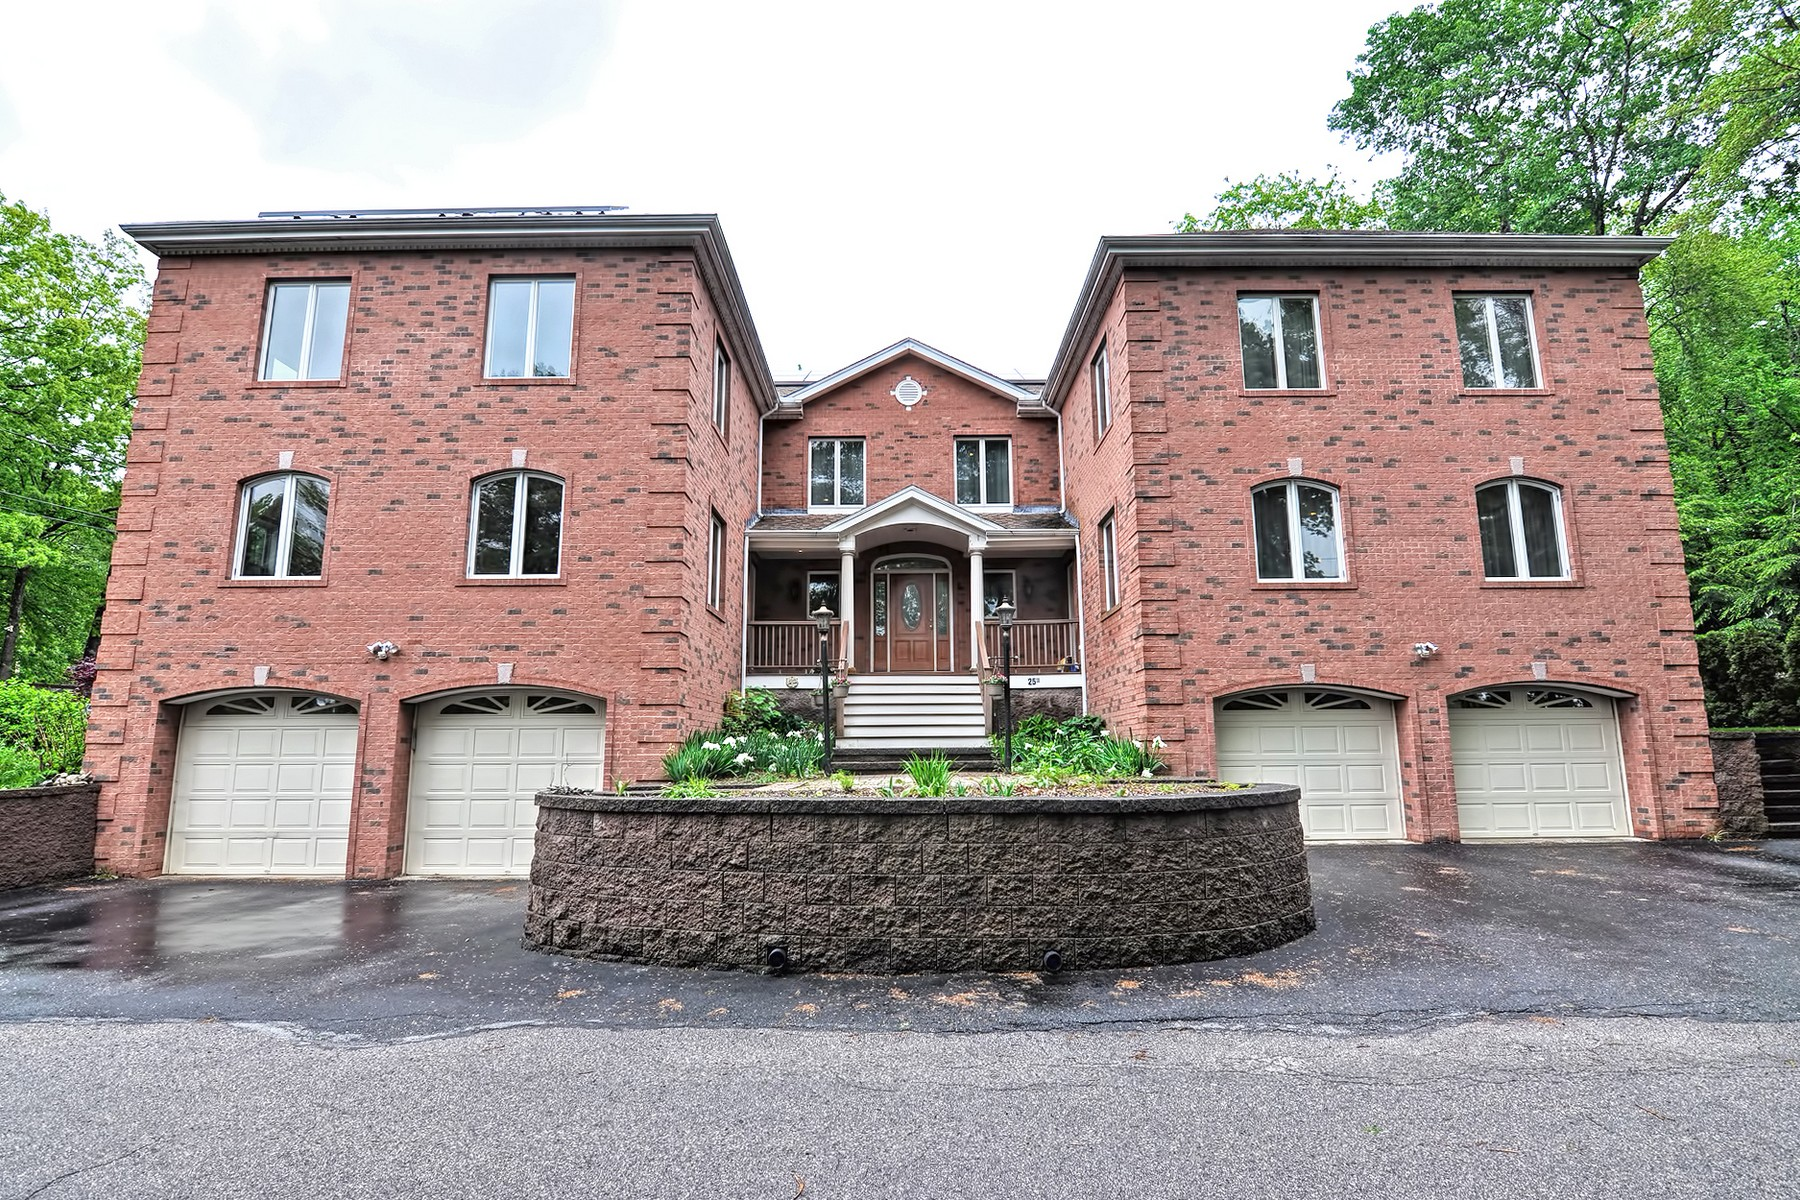 Single Family Home for Active at Colonial With Water Views Of Lake Maspenock 25 Lakeshore Drive Hopkinton, Massachusetts 01748 United States